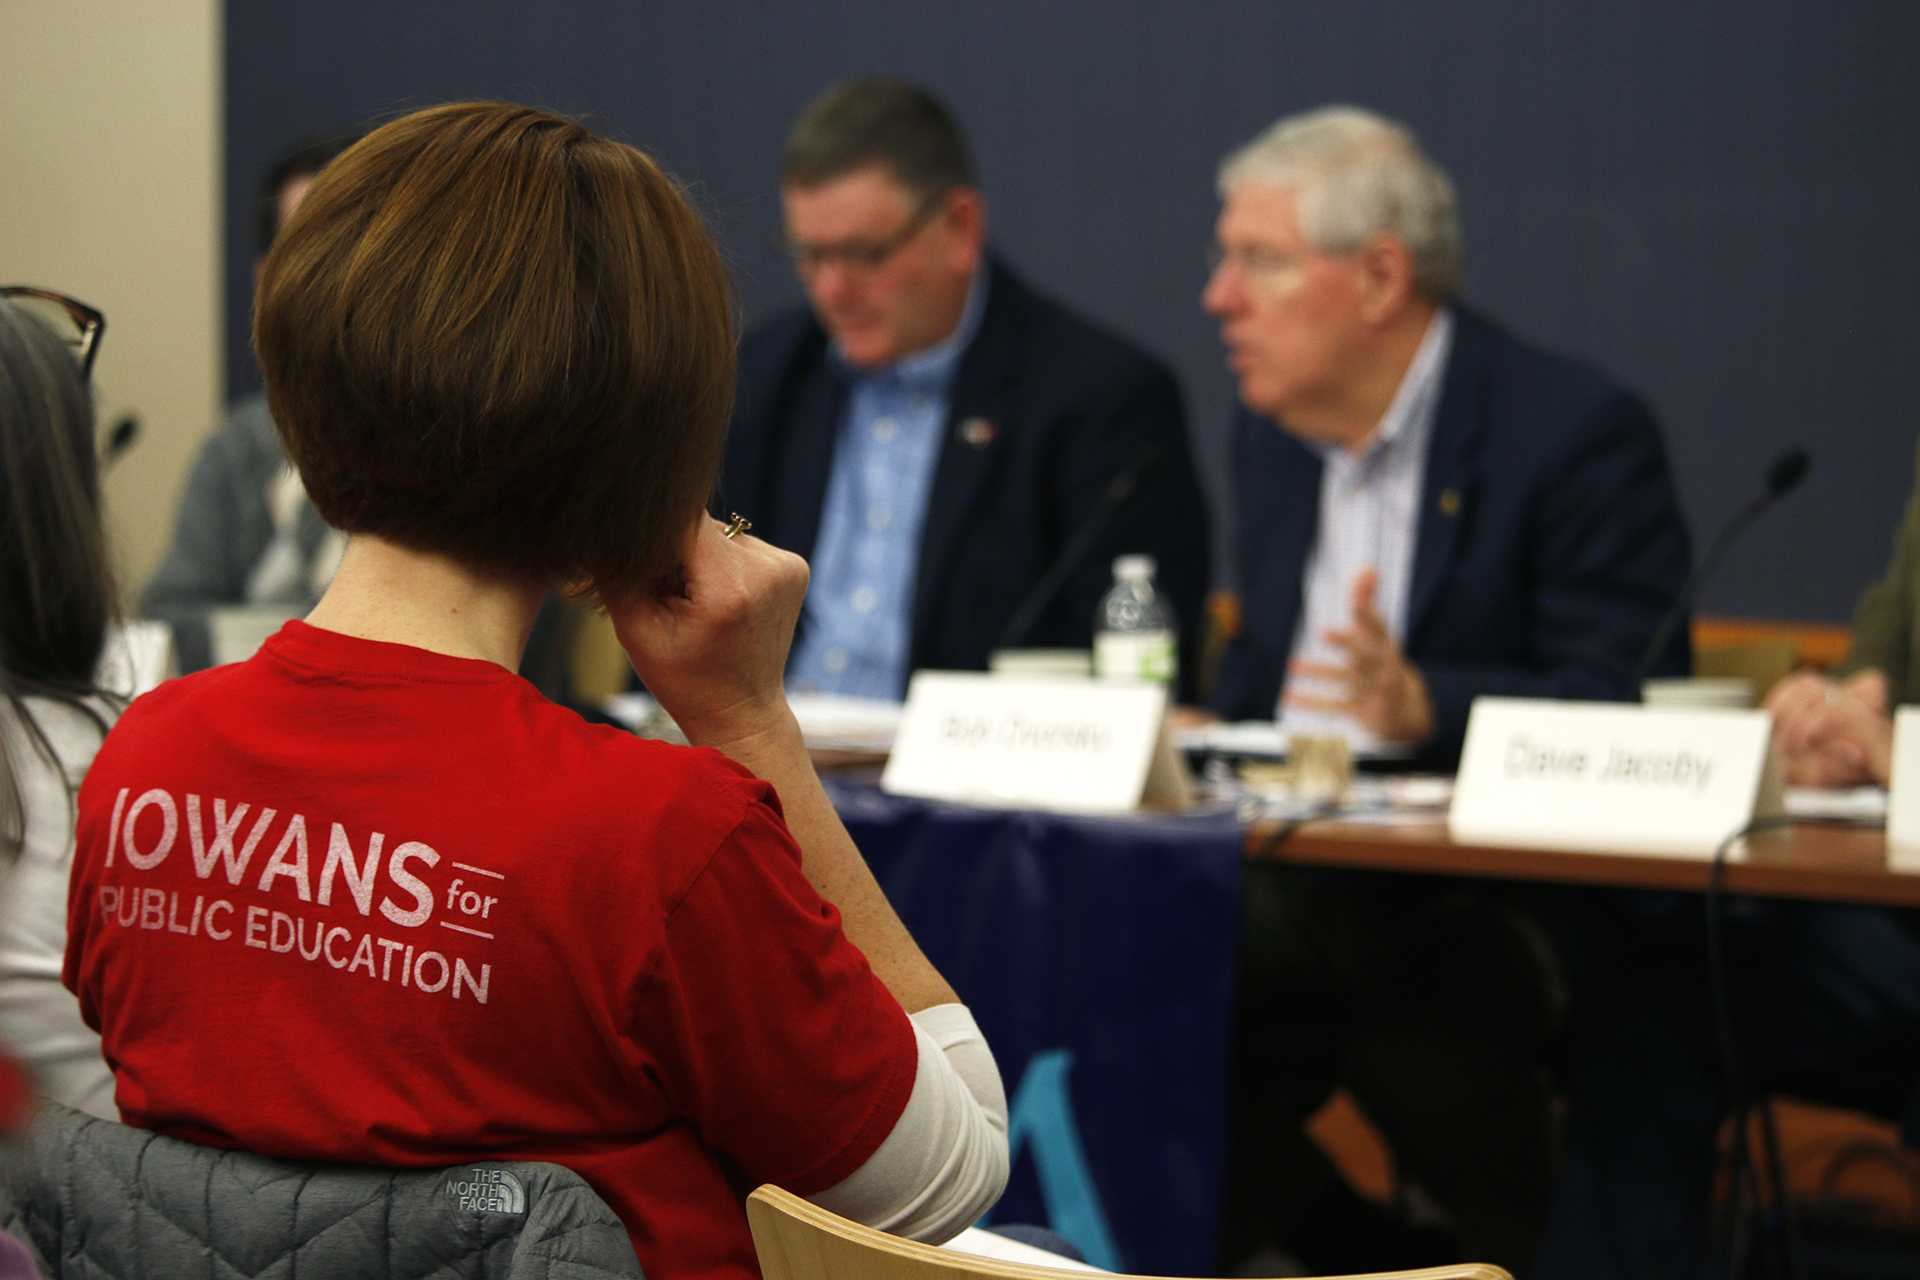 An attendee listens during the League of Women Voters Legislative Forum at the Iowa City Public Library on Saturday, Jan. 27, 2018. The event covered budget costs for transportation and education in different Iowa settings. (Katina Zentz/ The Daily Iowan)